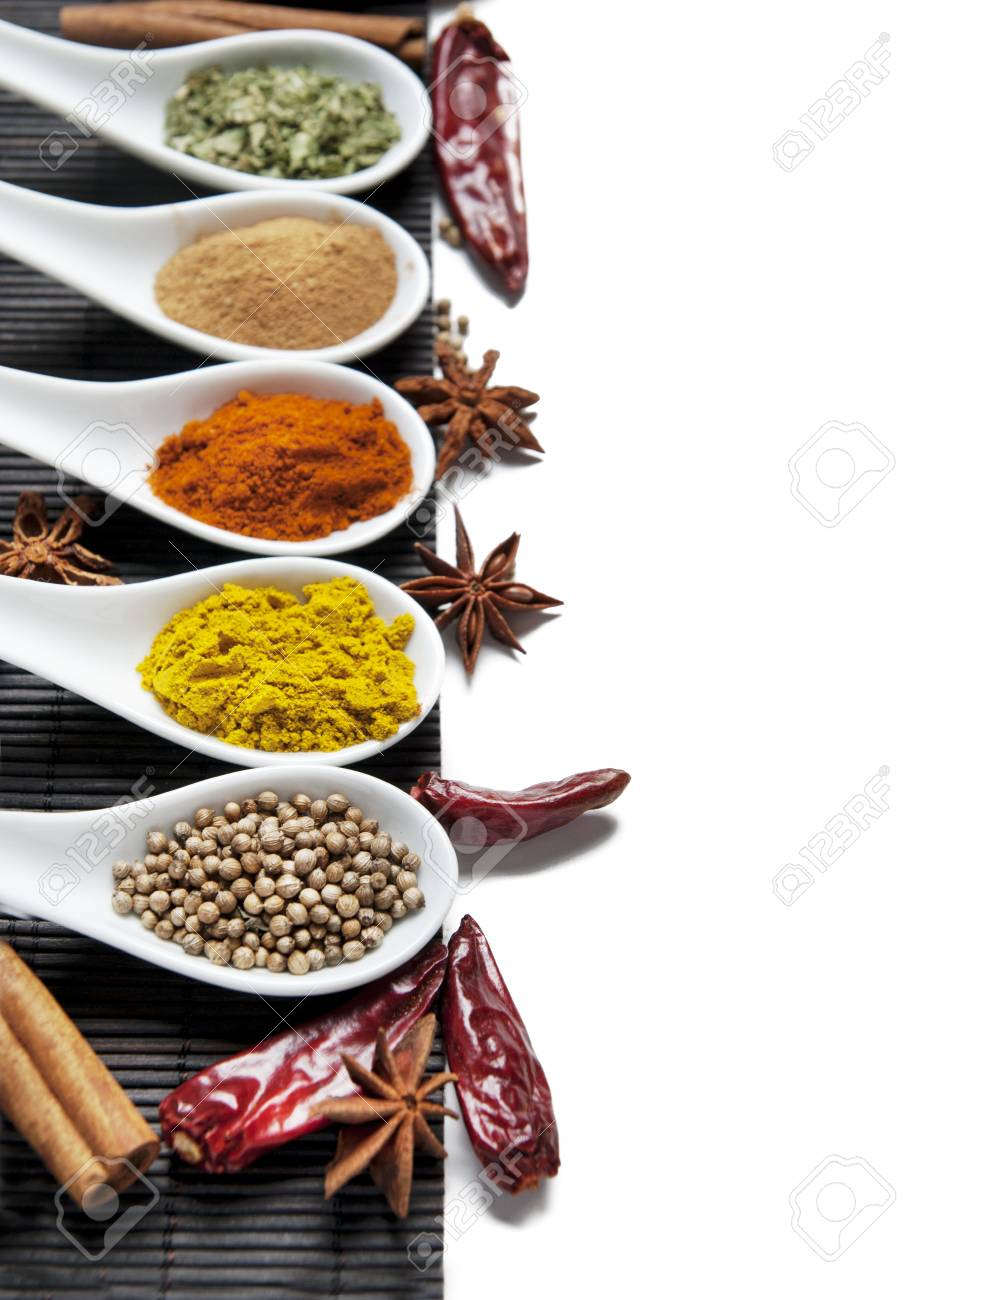 Top view on mixed dry colorful spices in spoons isolated on white background. Indian food and oriental cooking ingredients. Asian restaurant food menu design. Curry, chili, paprika, pepper, cinnamon. - 114900786